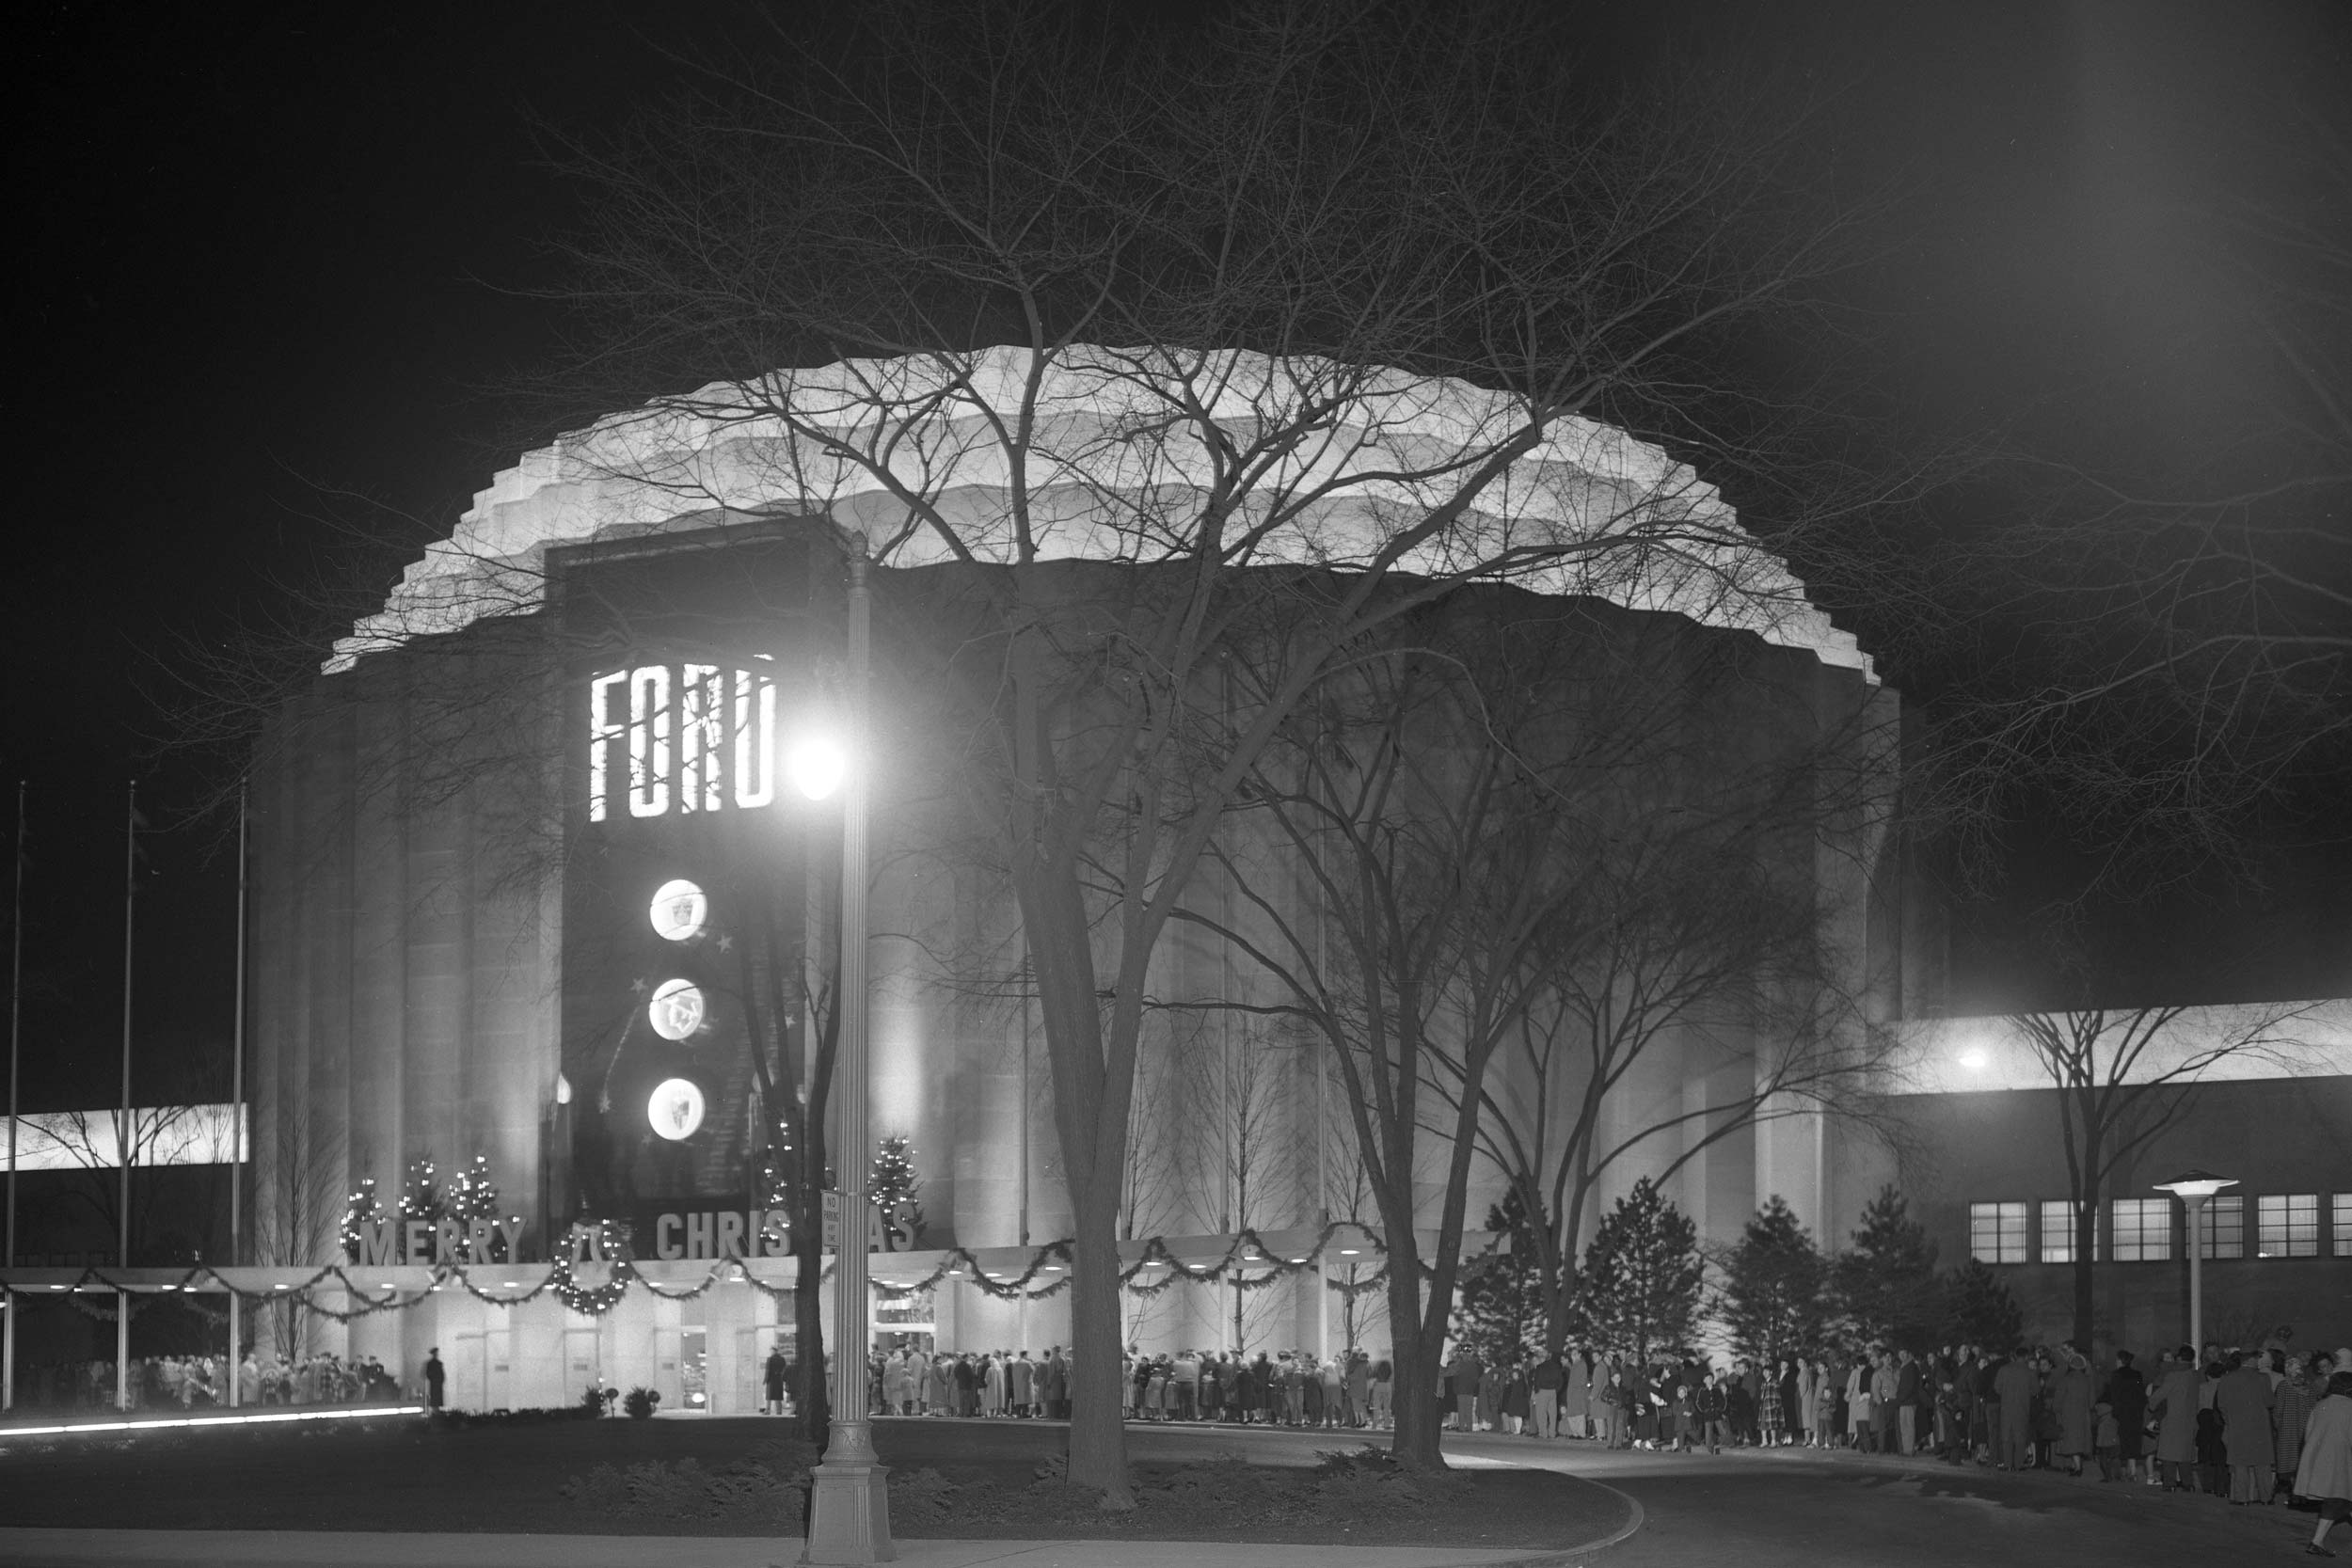 1953 Ford Christmas display at Rotunda